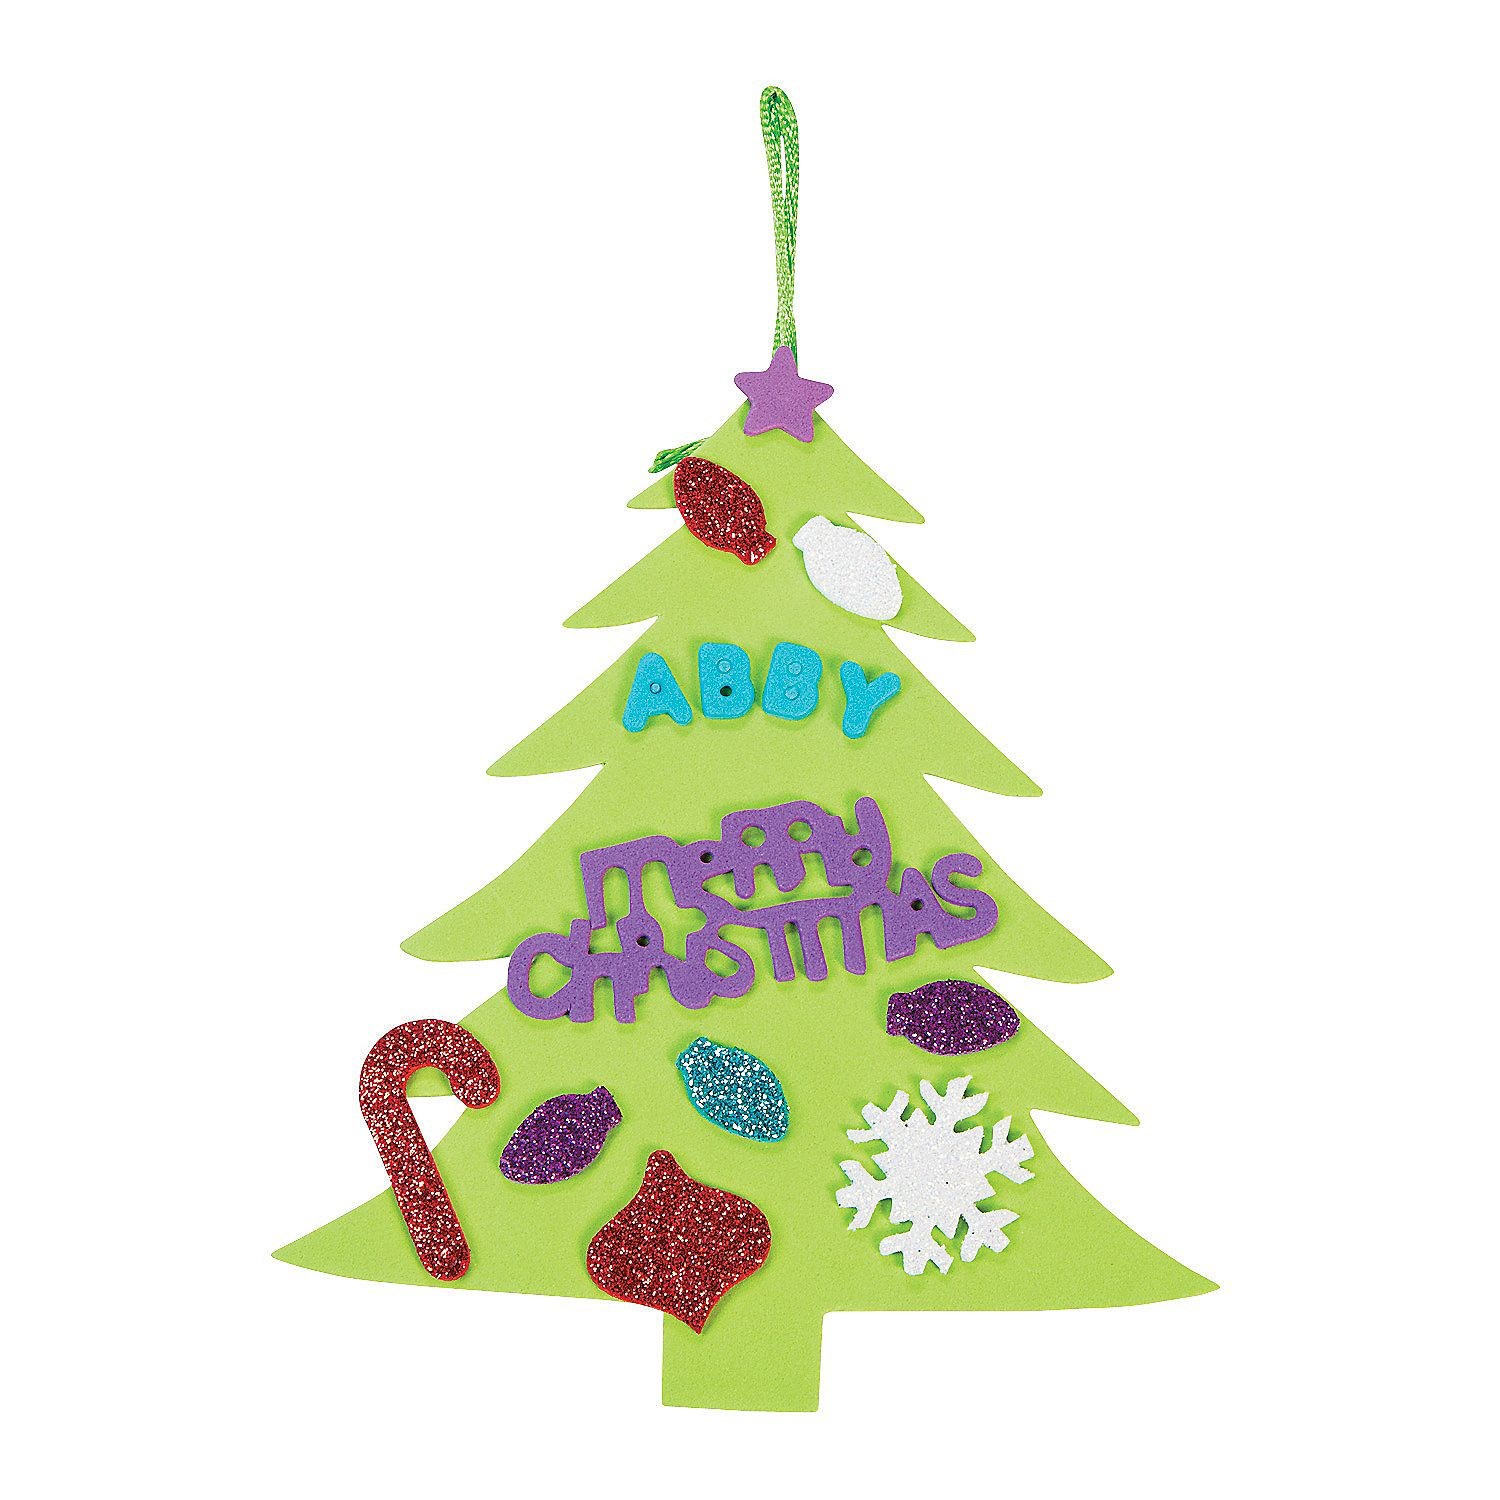 Christmas Tree Ornament Craft Kit Discontinued Christmas Tree Ornament Crafts Ornament Crafts Christmas Tree Ornaments